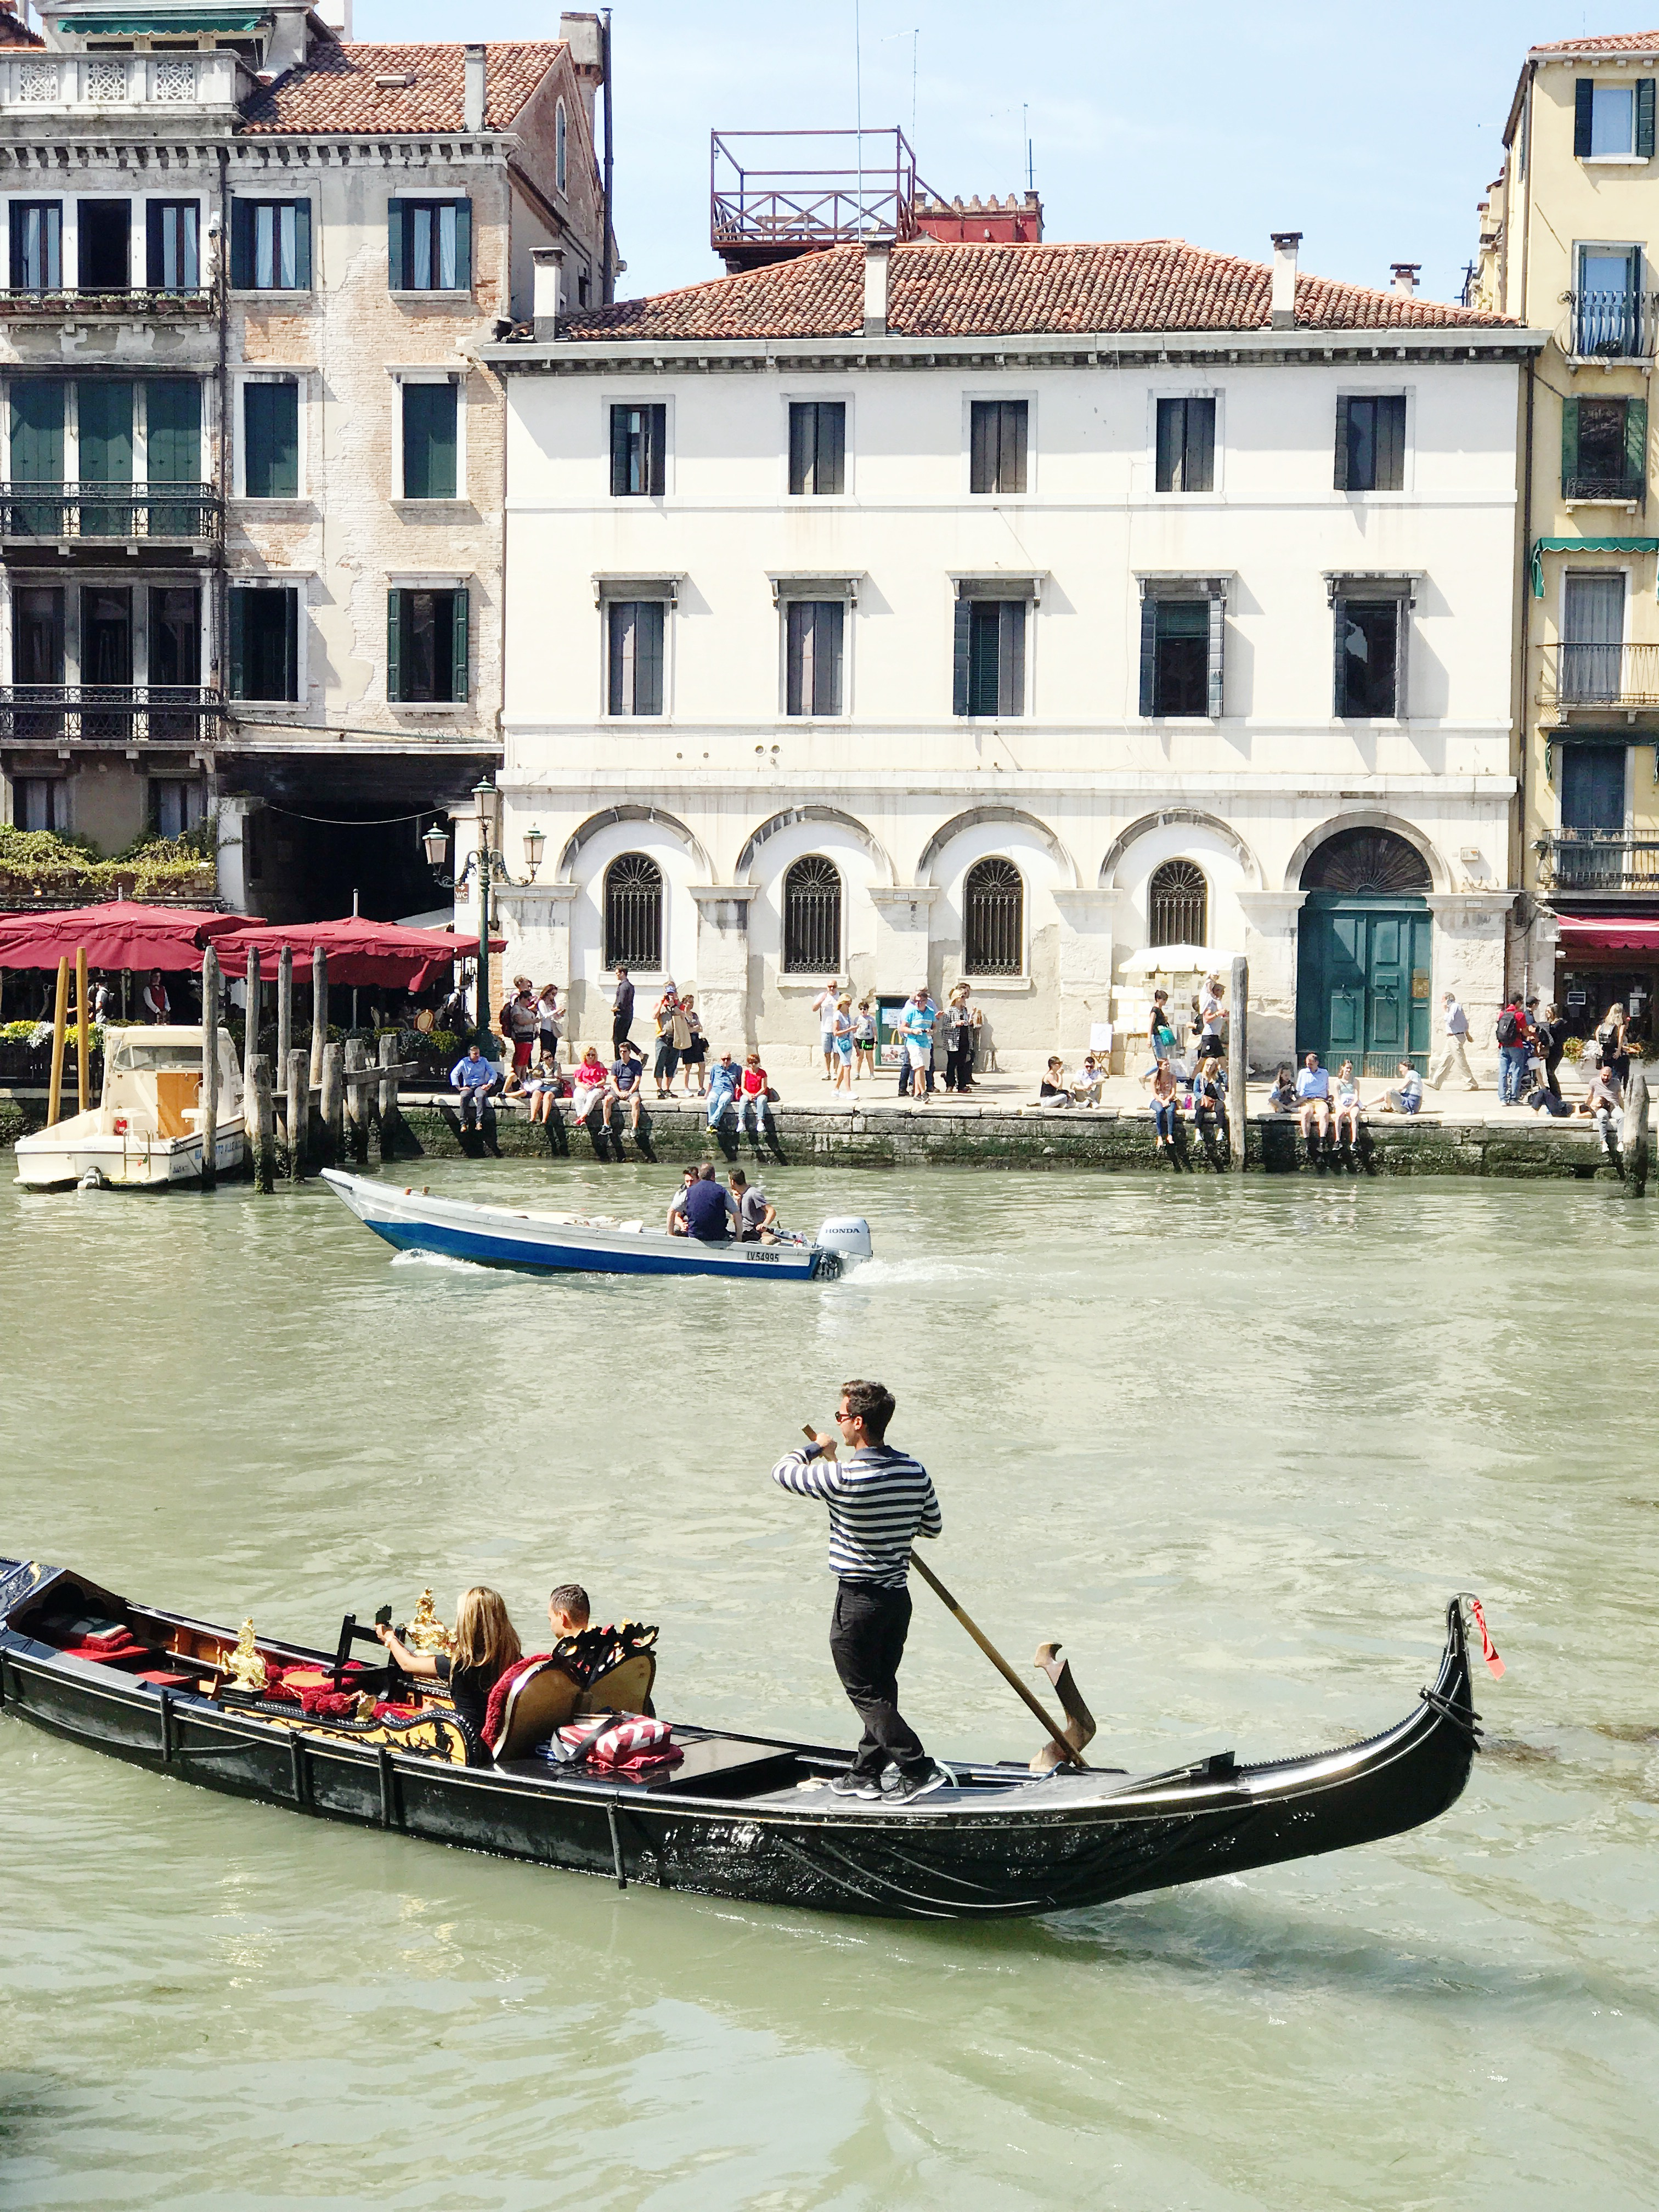 3 Days In Venice - What to do in Venice Italy - Things to do in Venice - Italy Itinerary - Planning a trip to Venice, Italy - Venice Italy Photography - Communikait by Kait Hanson